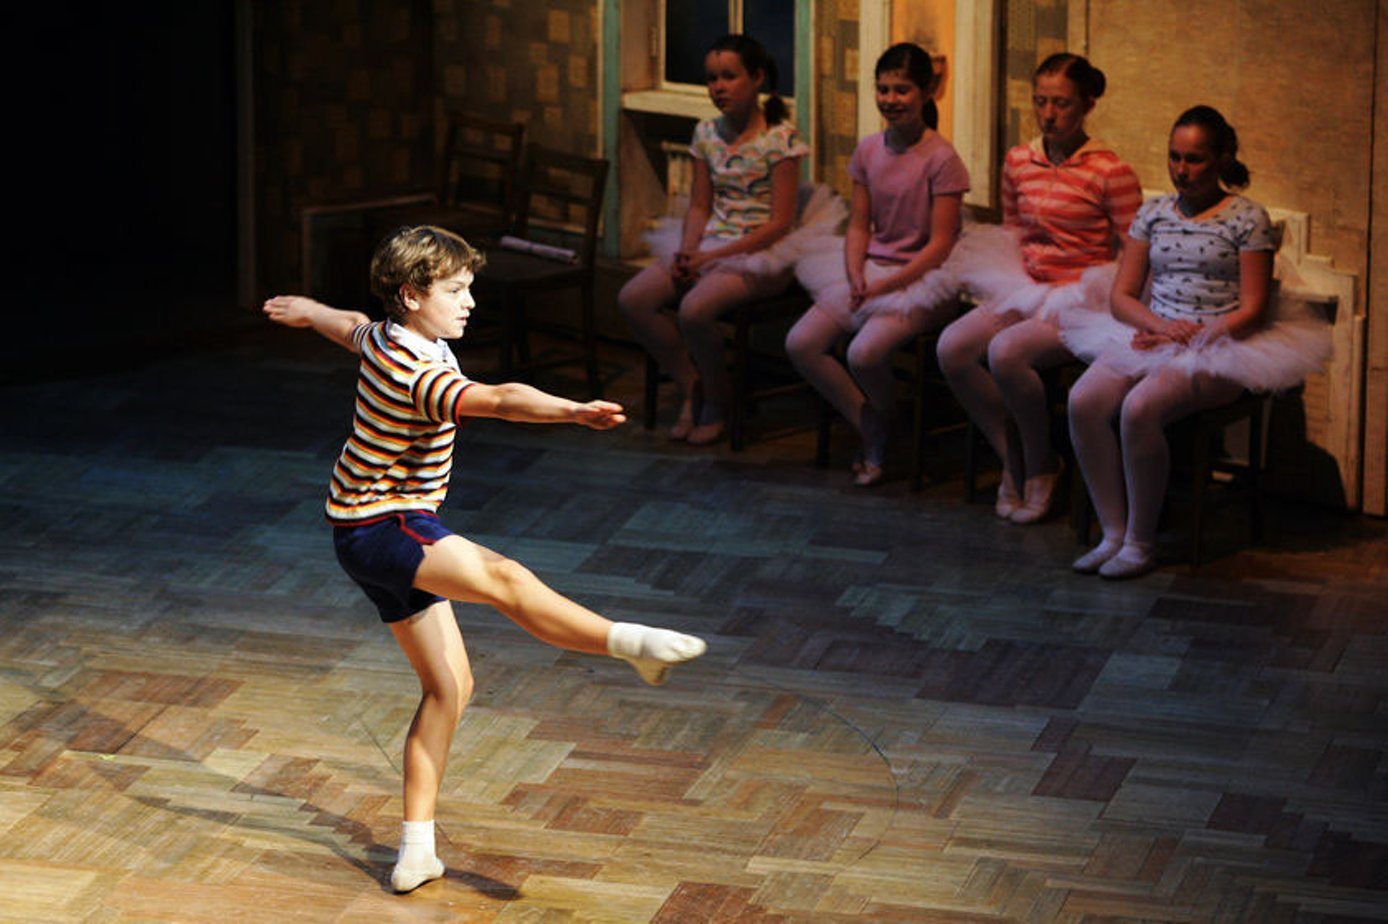 billy elliot essays Billy elliot and margaret thatcher essay - the film, billy elliot, is about the social and personal crisis and the everyday life during the era of margaret thatcher it is also about the social differences and stereotypes which still exist in the society.